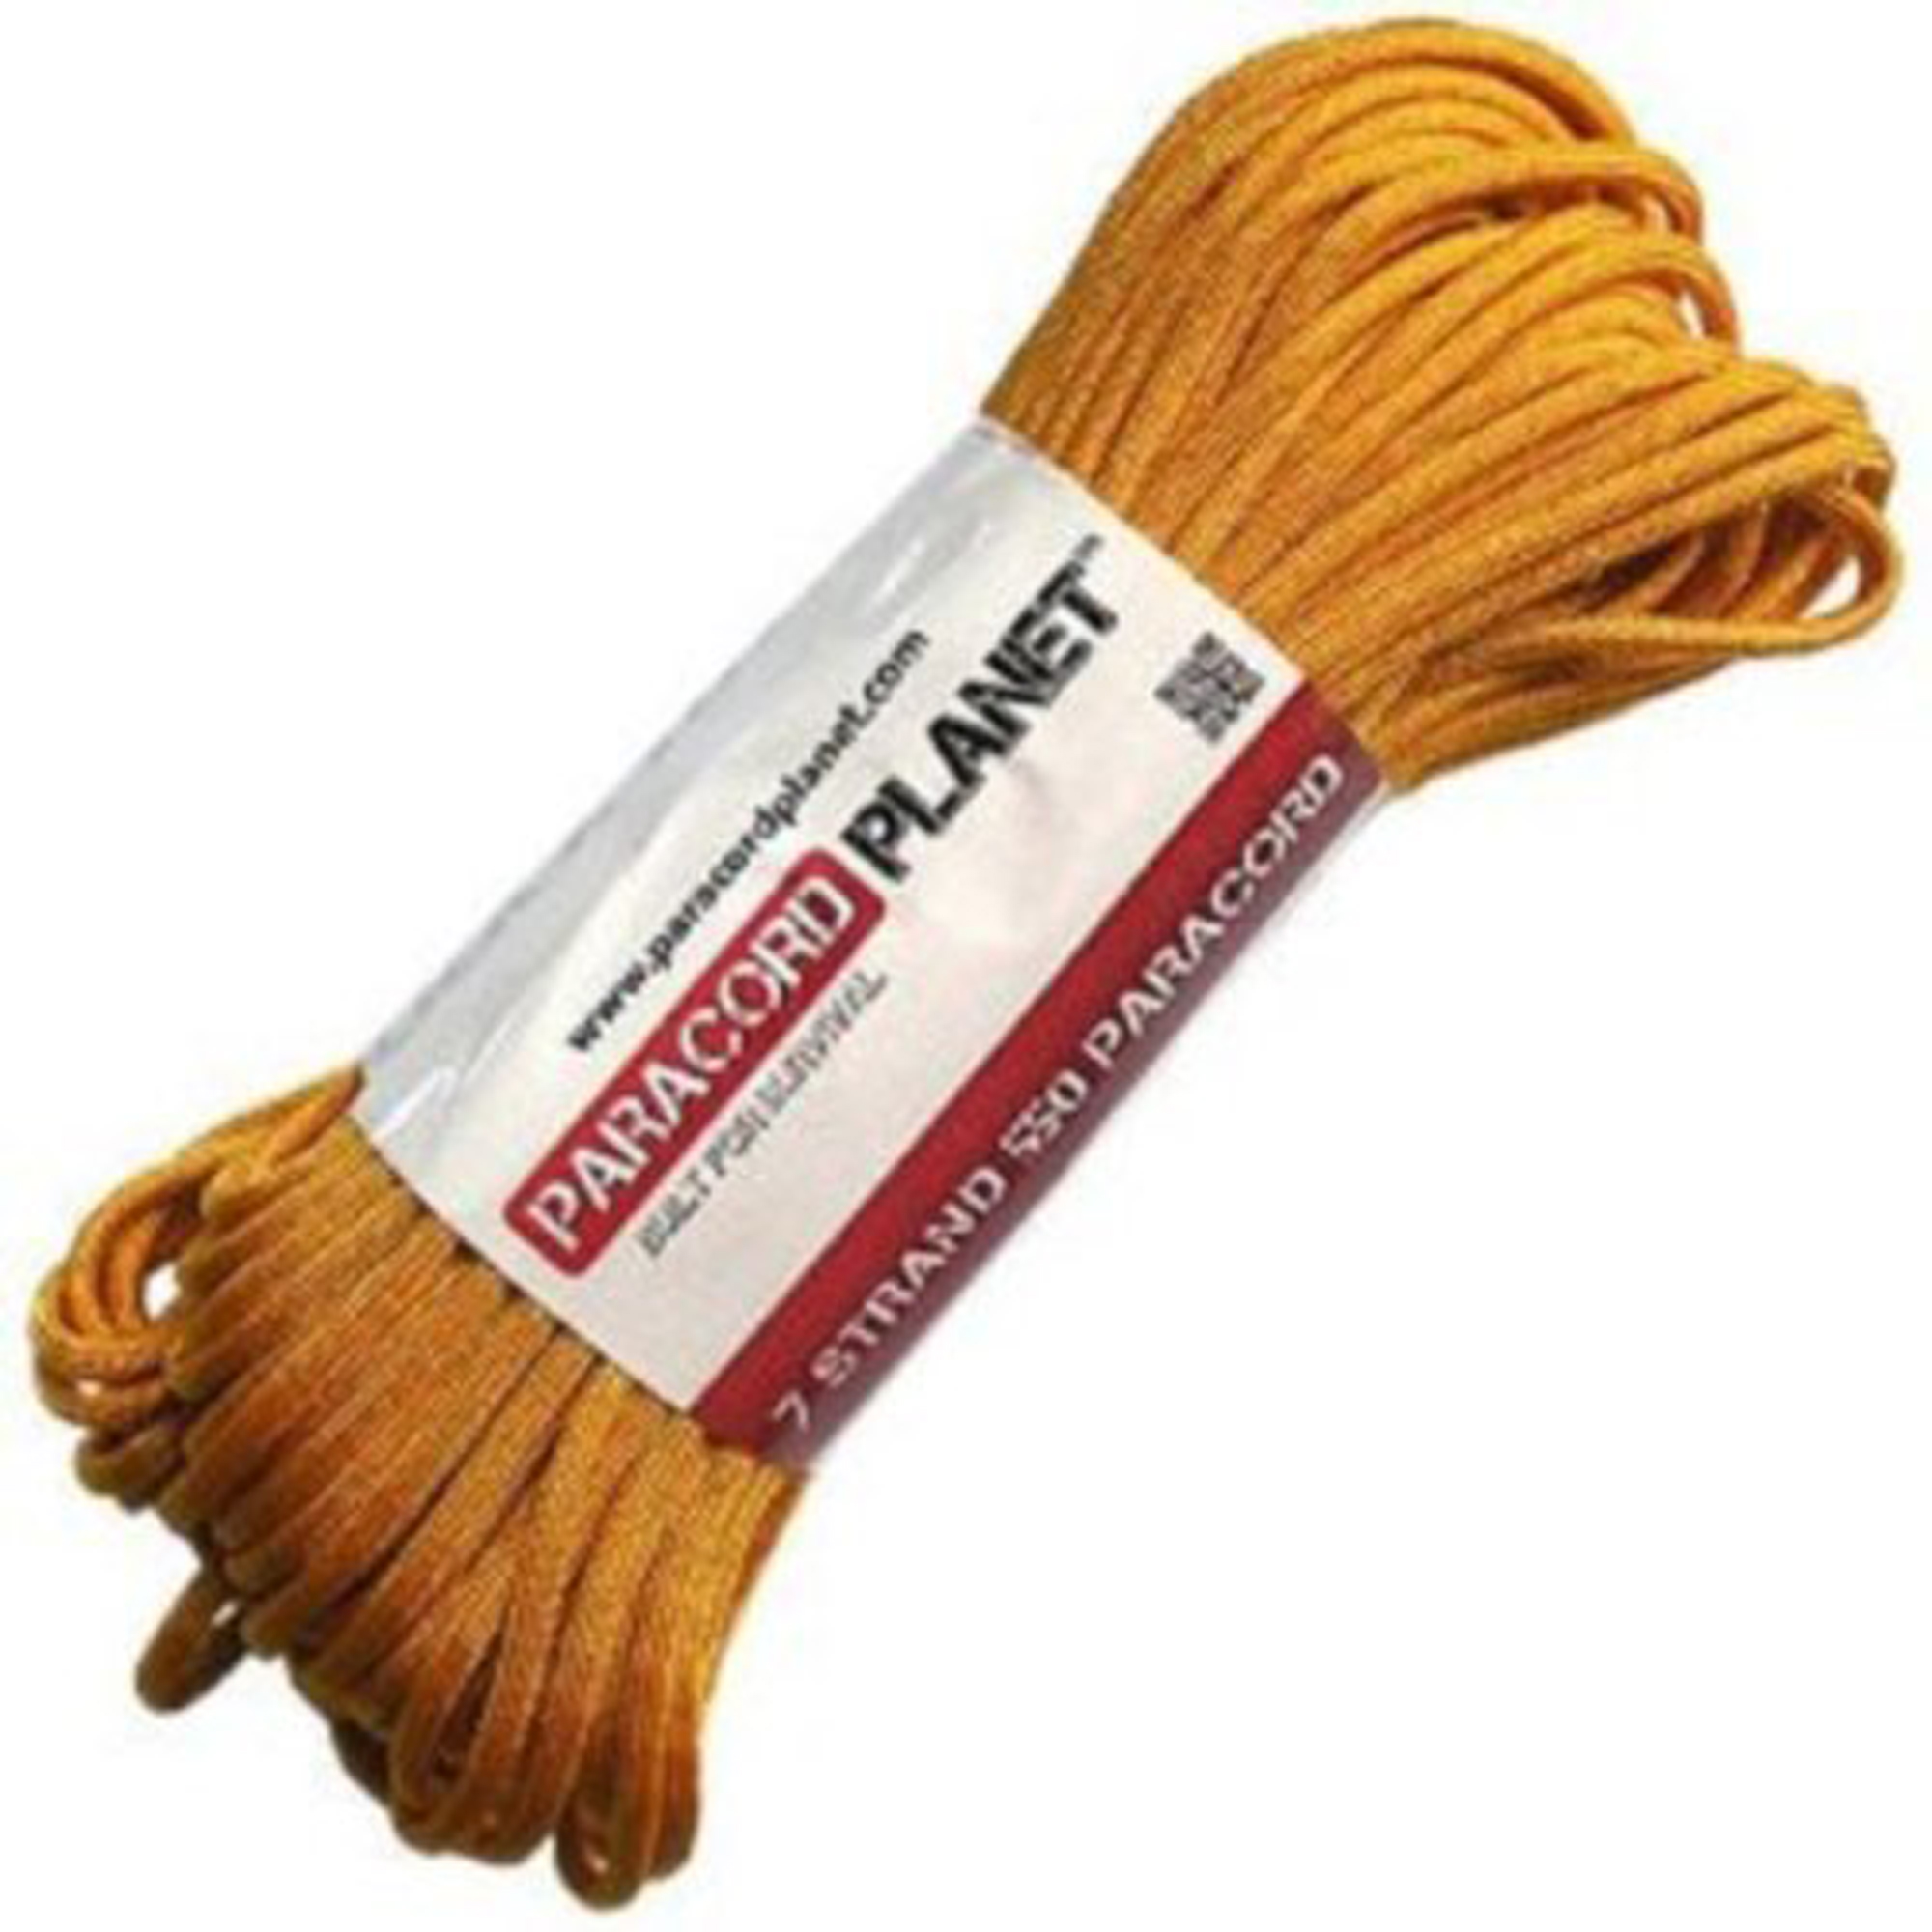 Goldenrod 100Ft 550lb Type III Paracord Survival Rope by Adventure 5